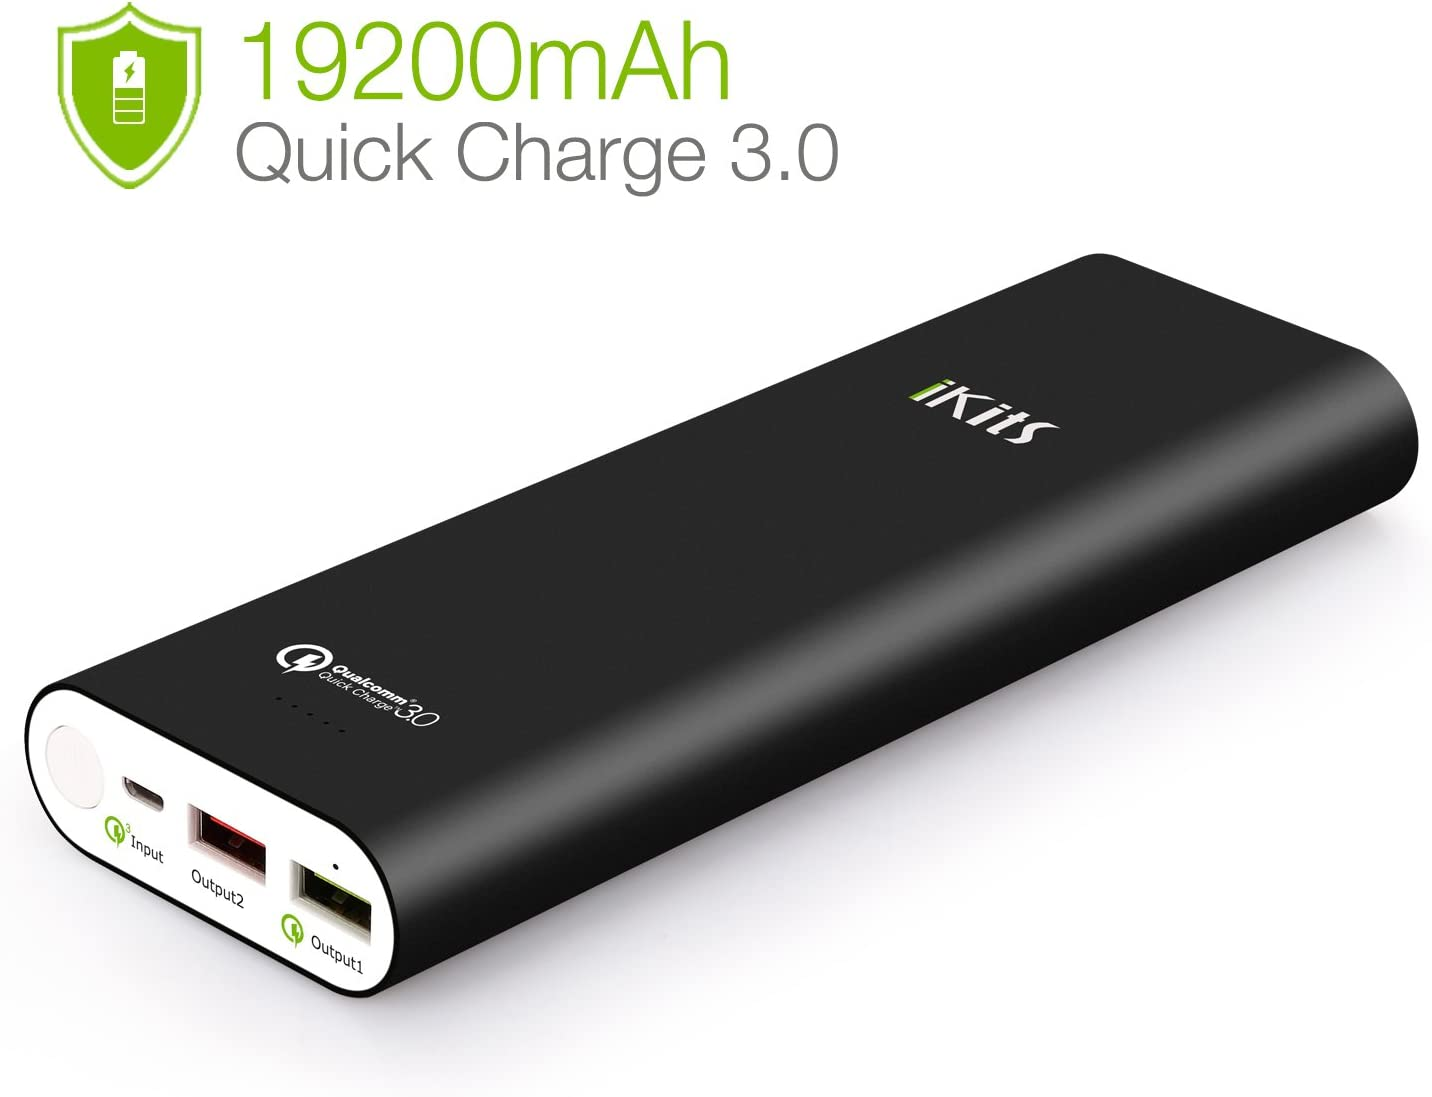 USB C Power Bank Portable Charger 20000mAh Omars External Battery Pack 15W Max Output Fast Phone Charging Battery Bank with 3 Outputs/& 2 Inputs Portable Battery Charger for iPhone Samsung iPad Tablet